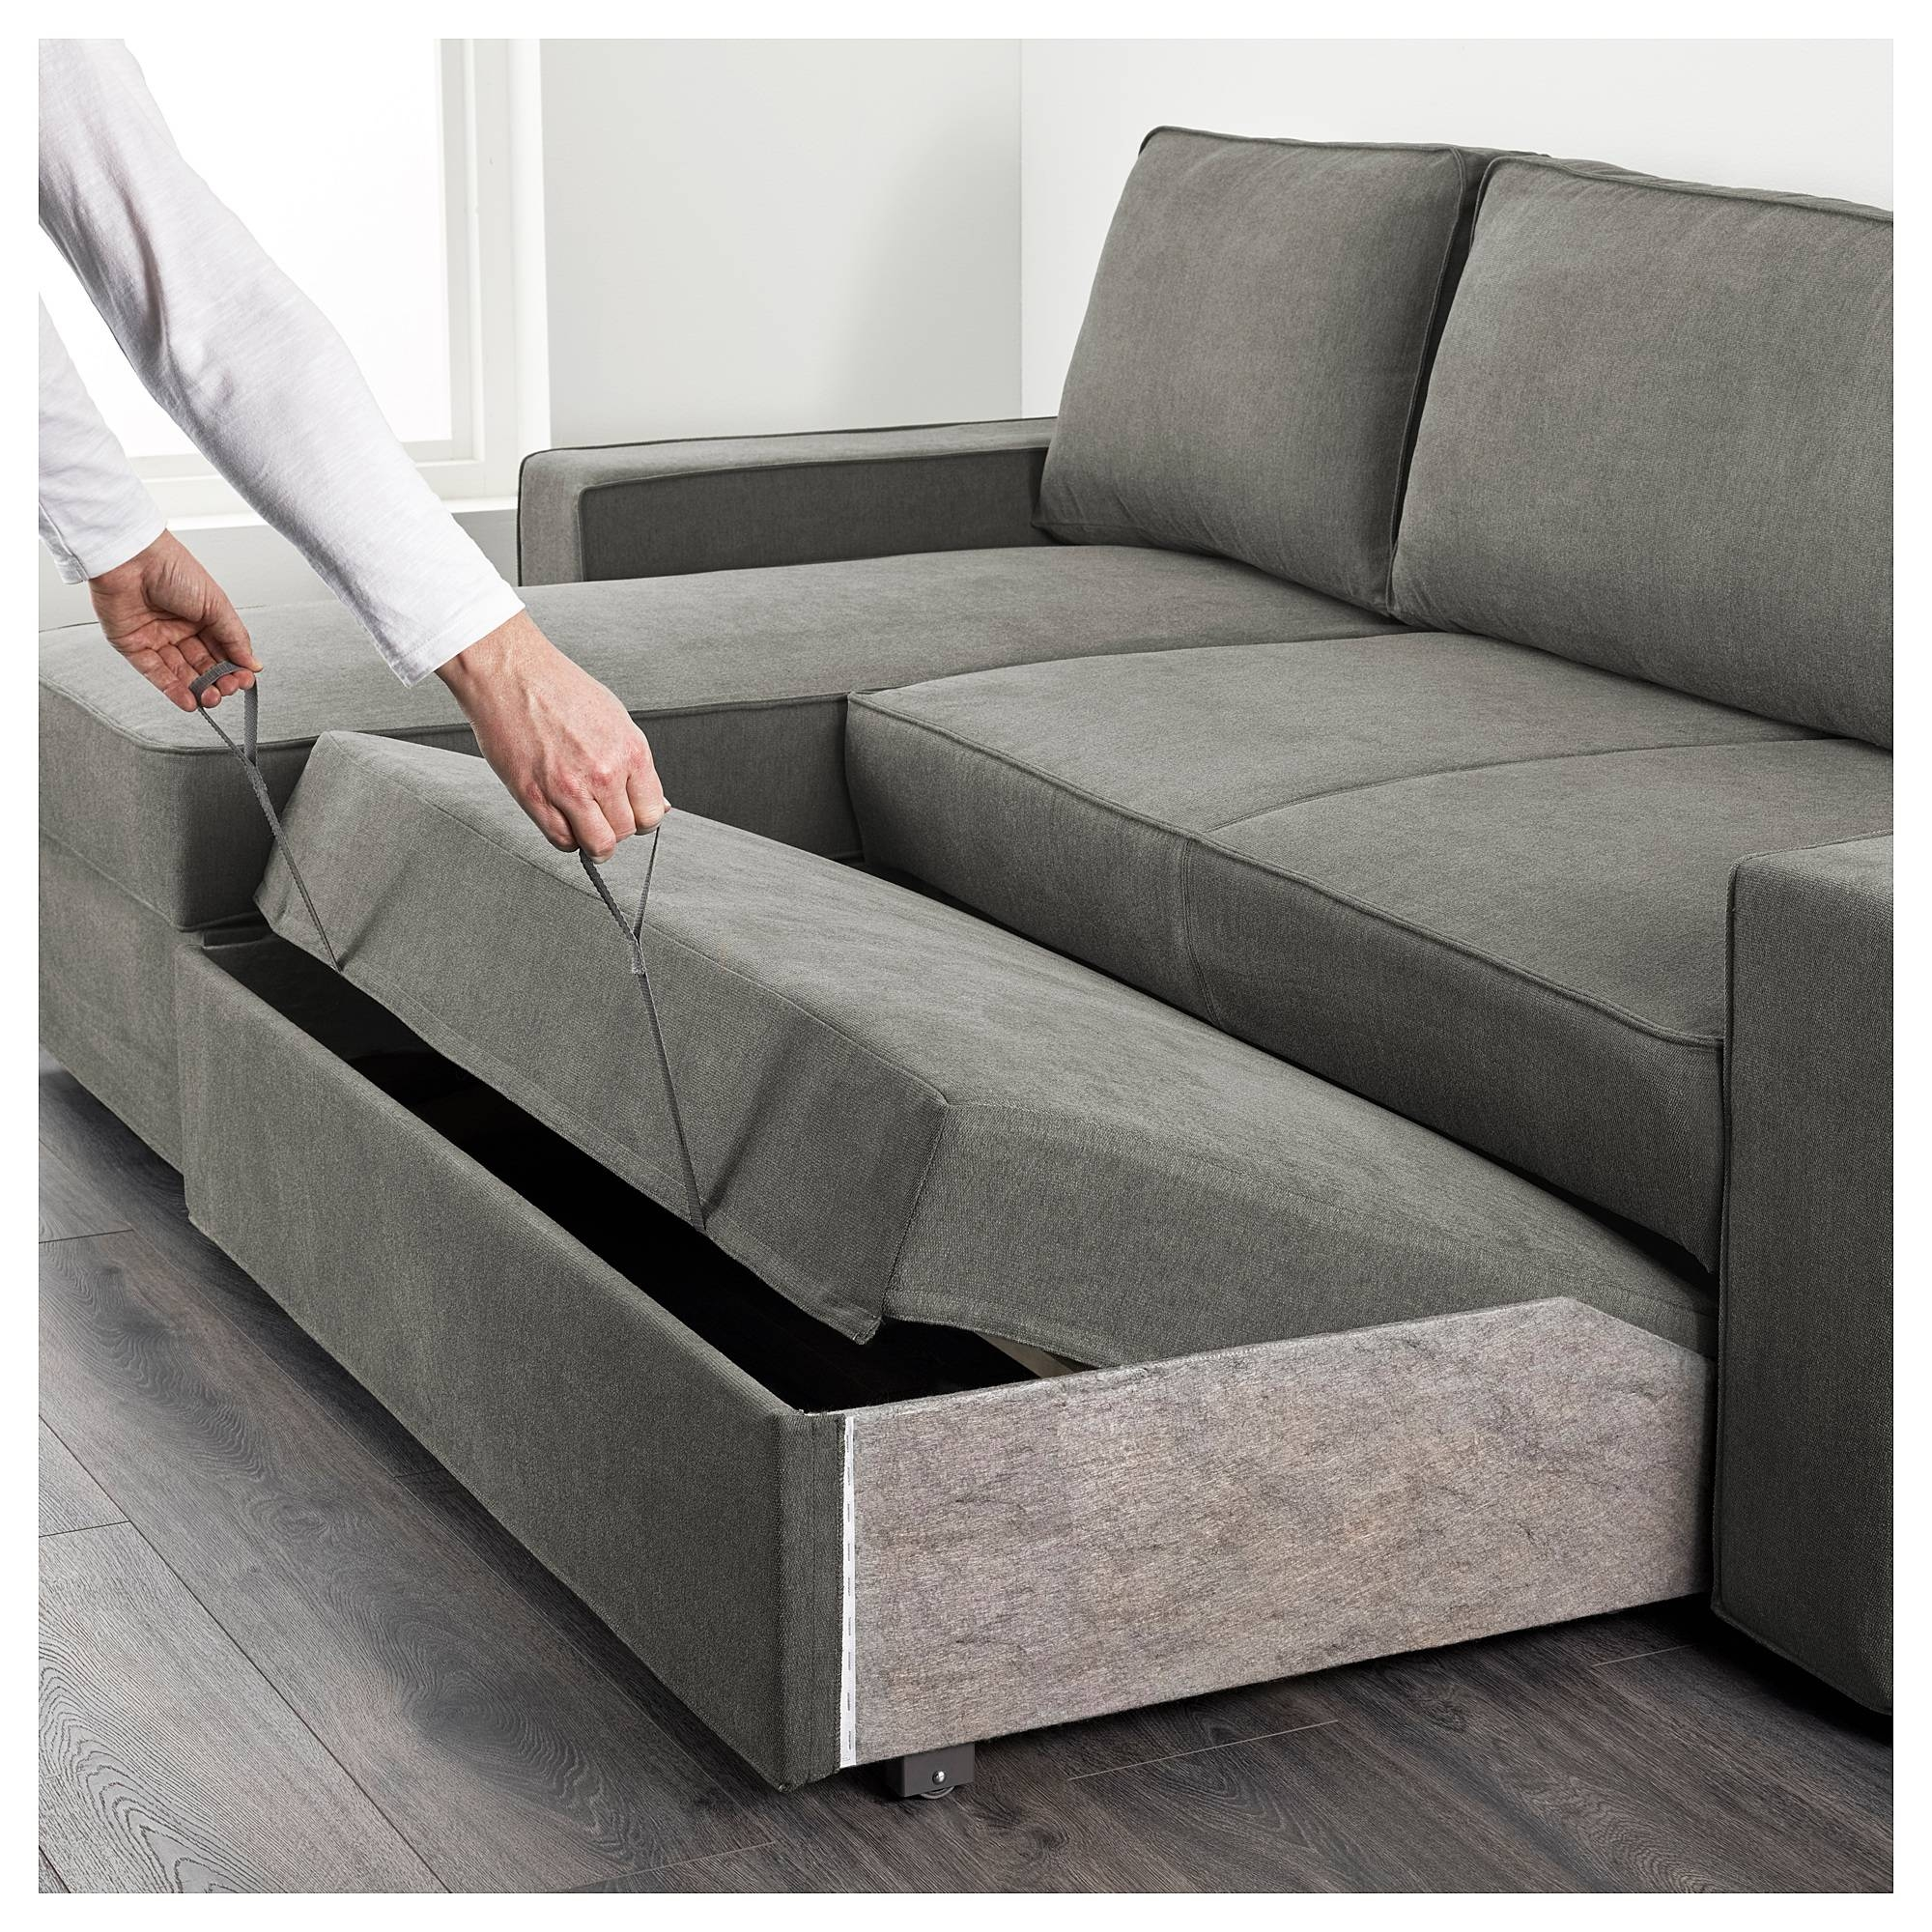 Vilasund Sofa Bed With Chaise Longue Borred Grey Green – Ikea With Sofa Beds With Chaise Lounge (View 15 of 15)